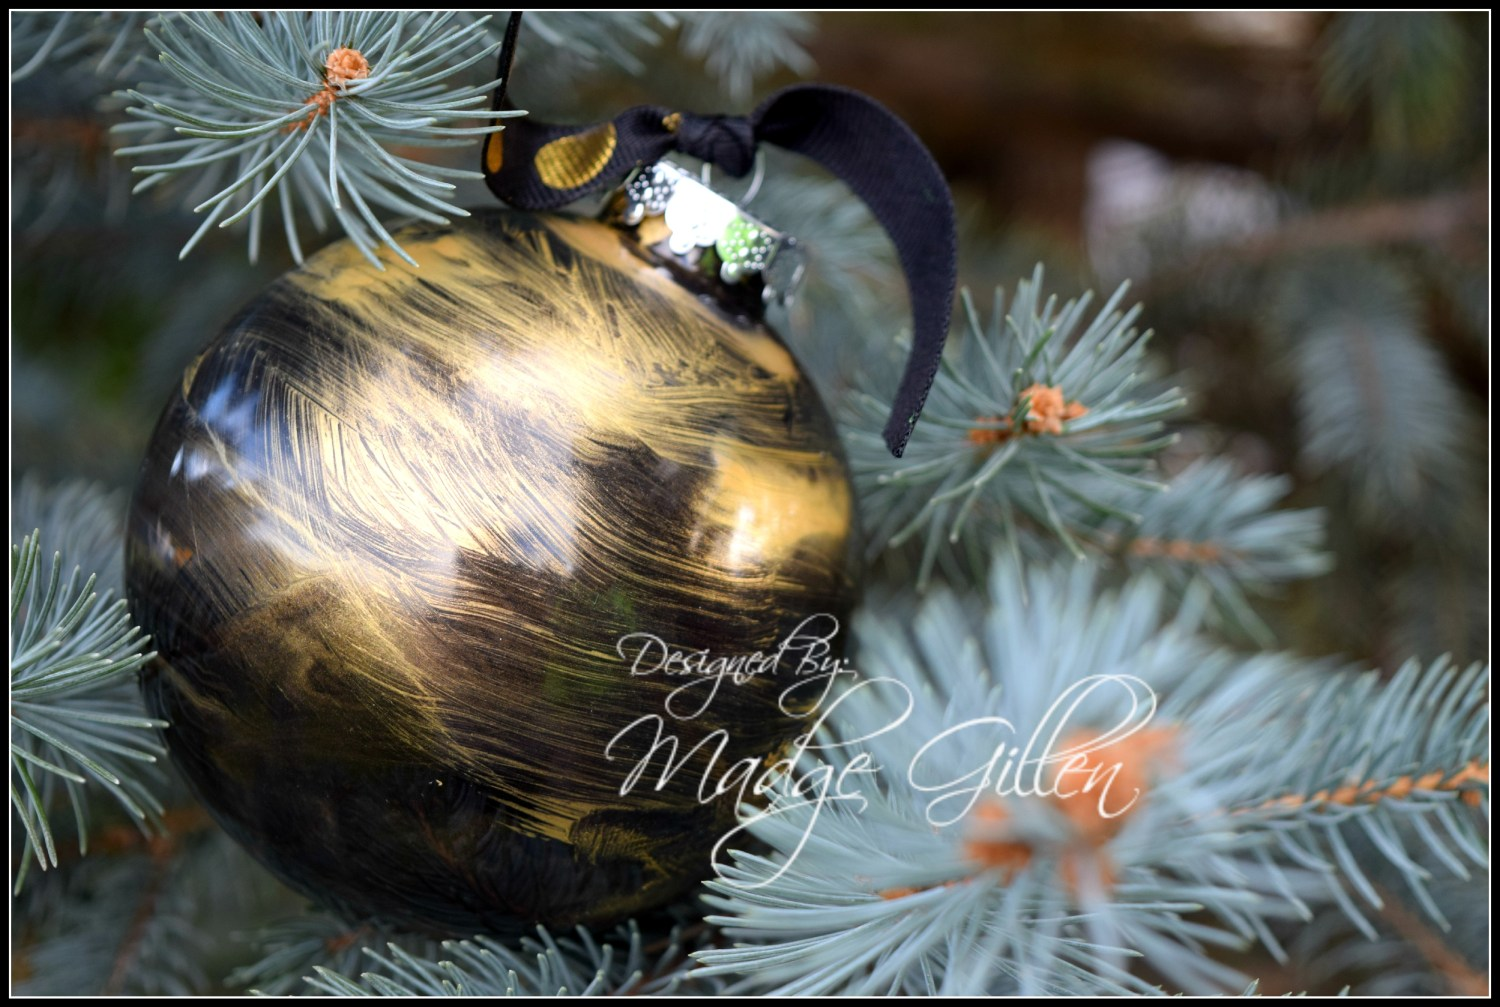 Elegant Black and Gold Christmas Ornament 1.Madge Gillen